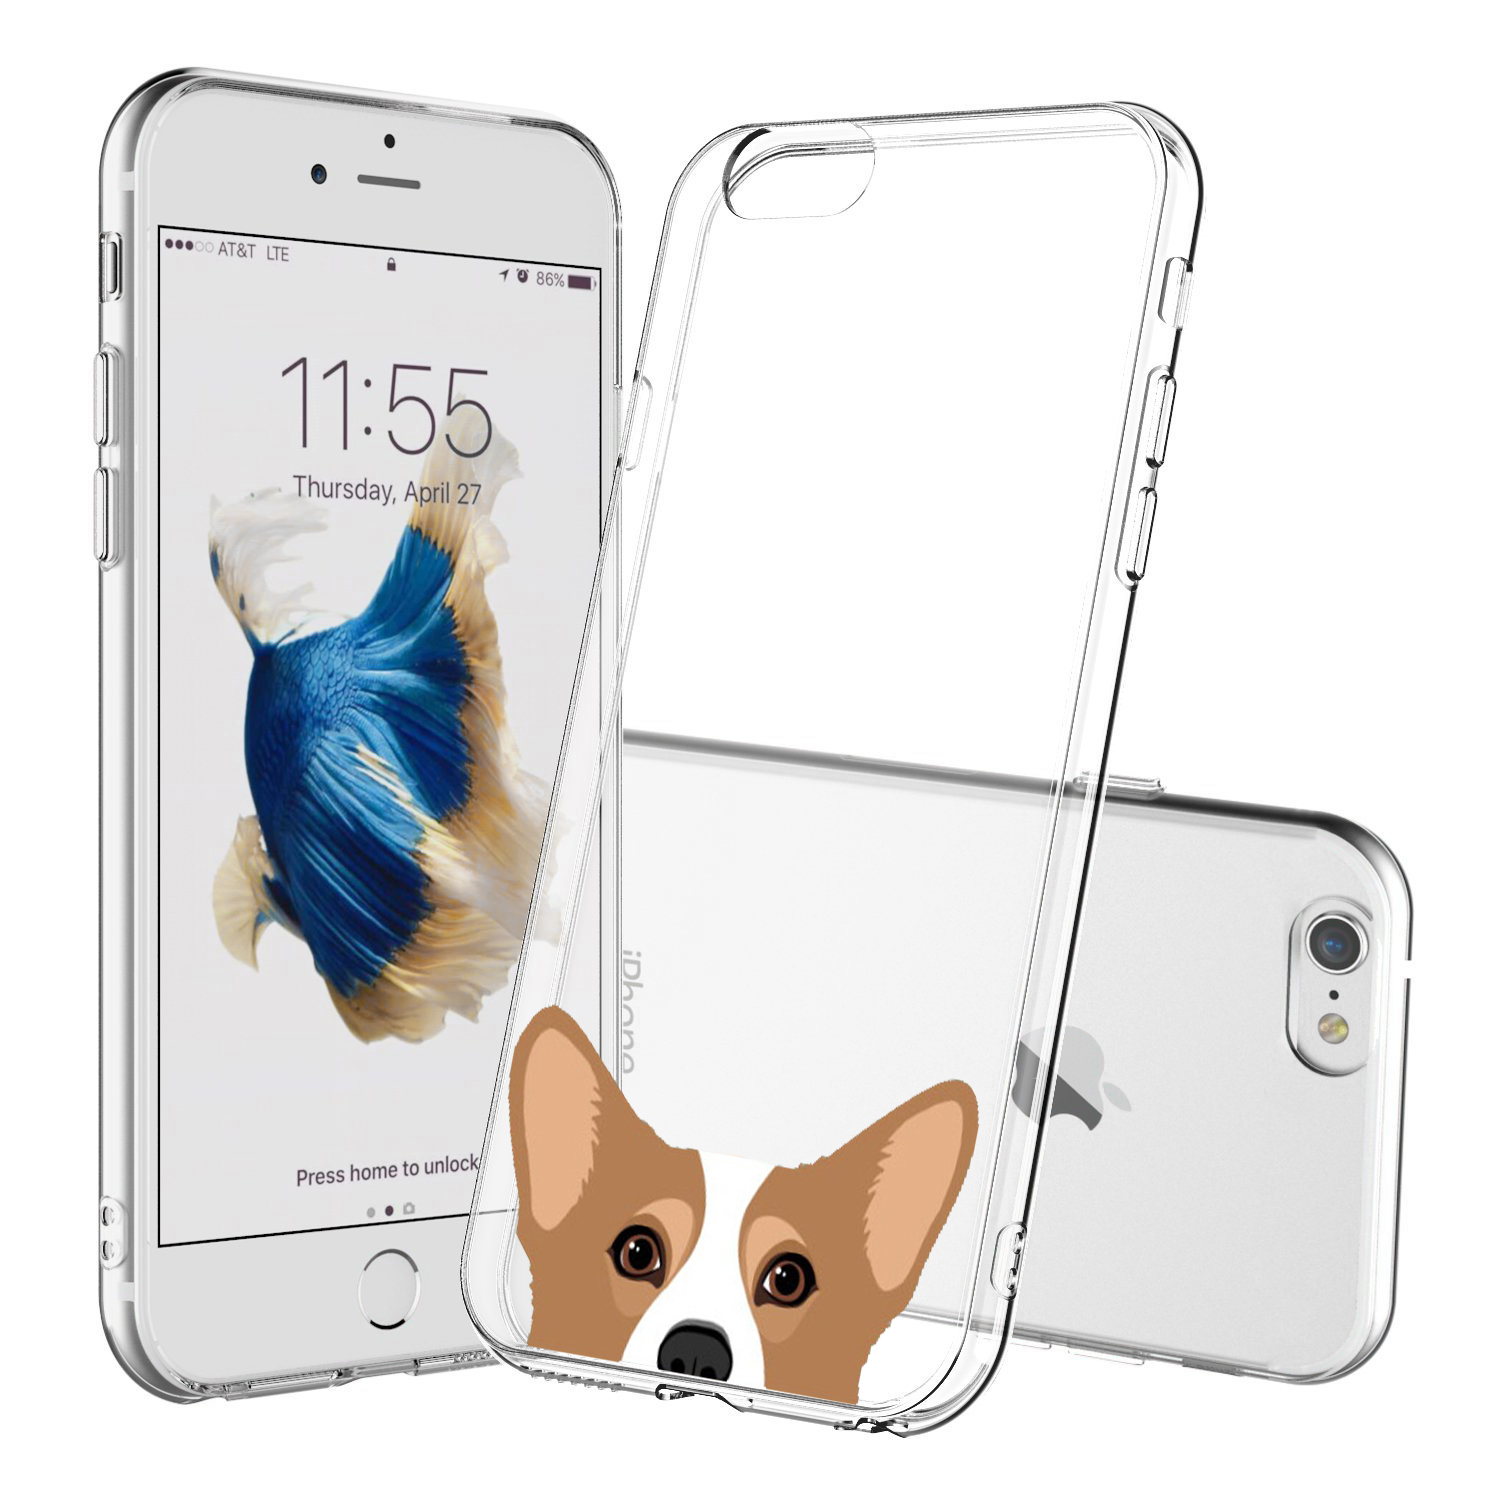 [REDshield] Apple iPhone 8 Plus/ 7 Plus TPU Case, [Corgi] Slim & Flexible Anti-shock Crystal Silicone Protective TPU Gel Skin Case Cover